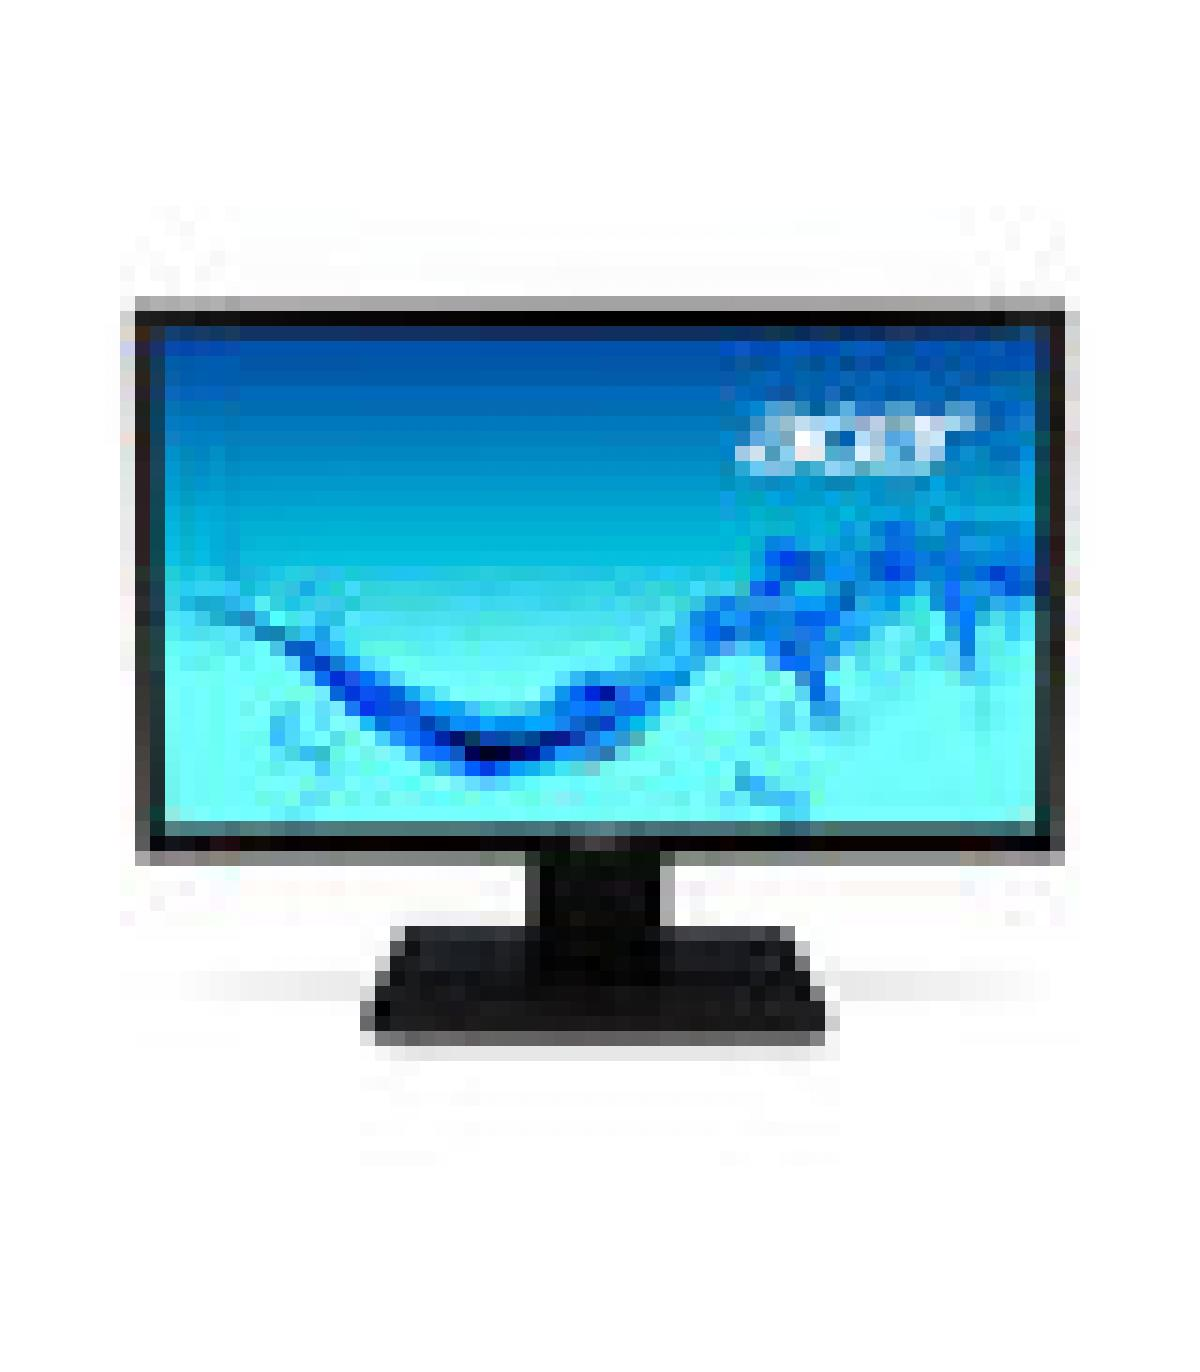 computer monitor buying guide computer monitor sizes - 1000×875